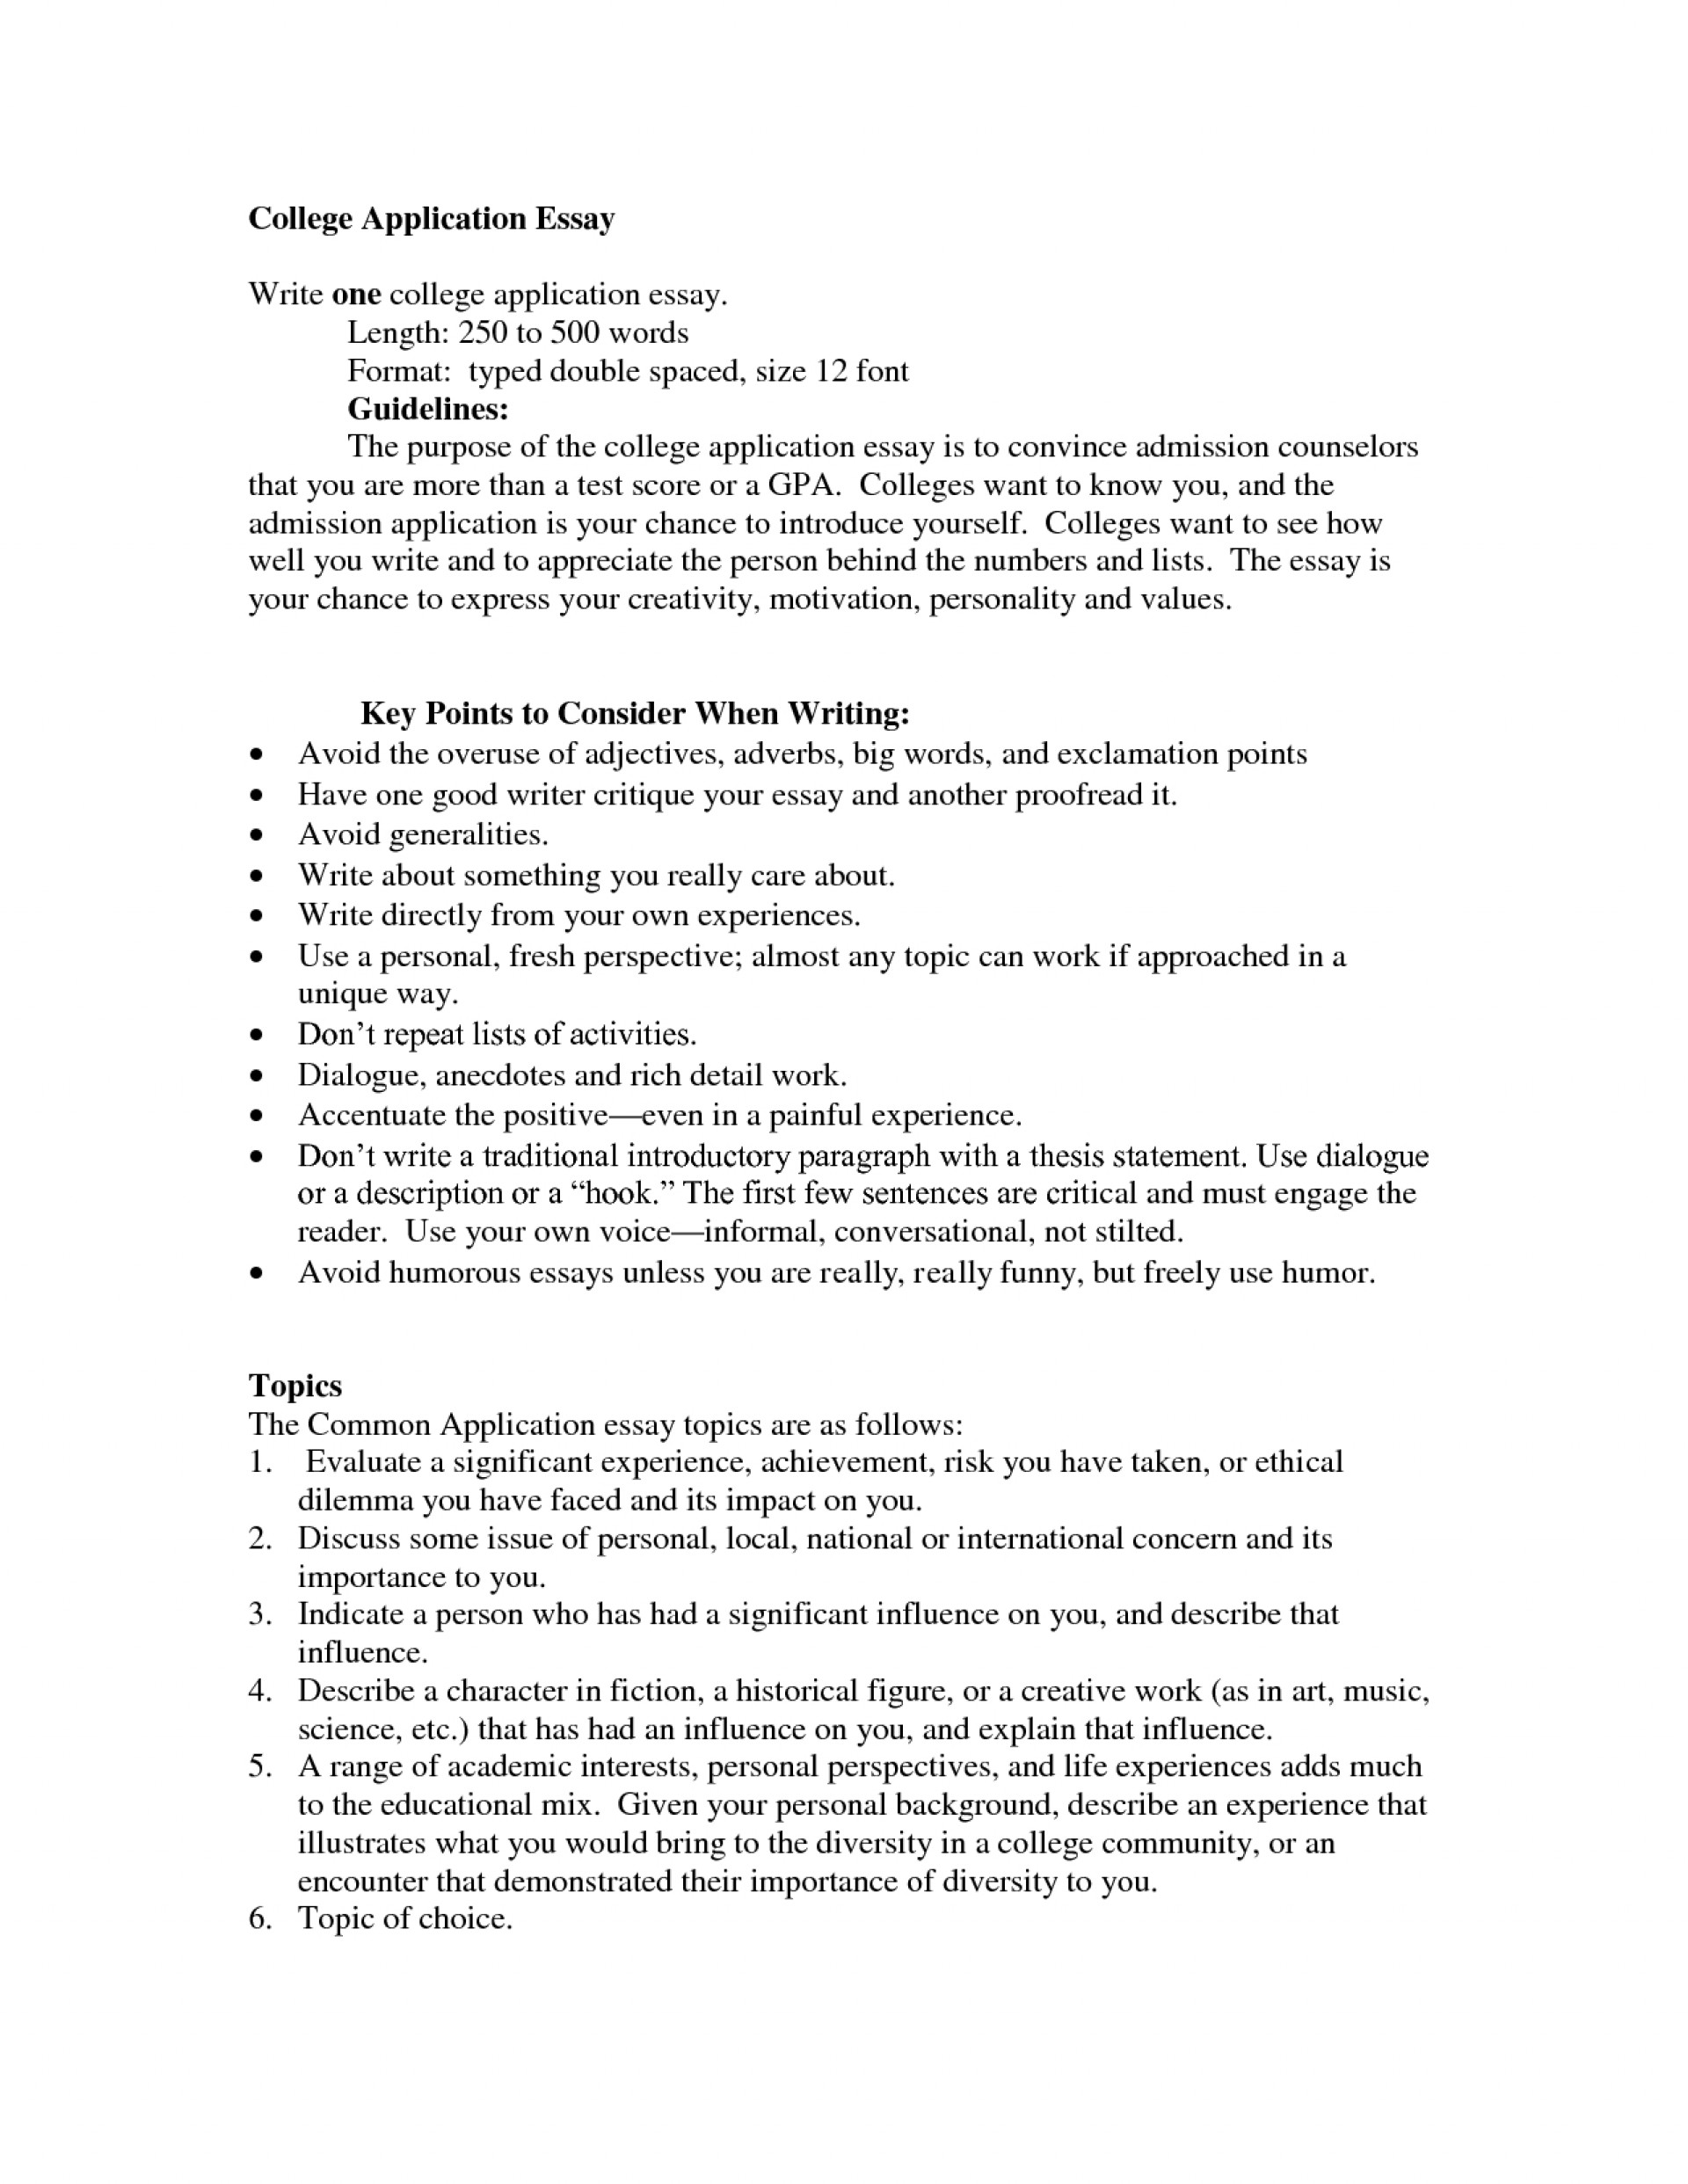 Concept in learned papers preschool research science